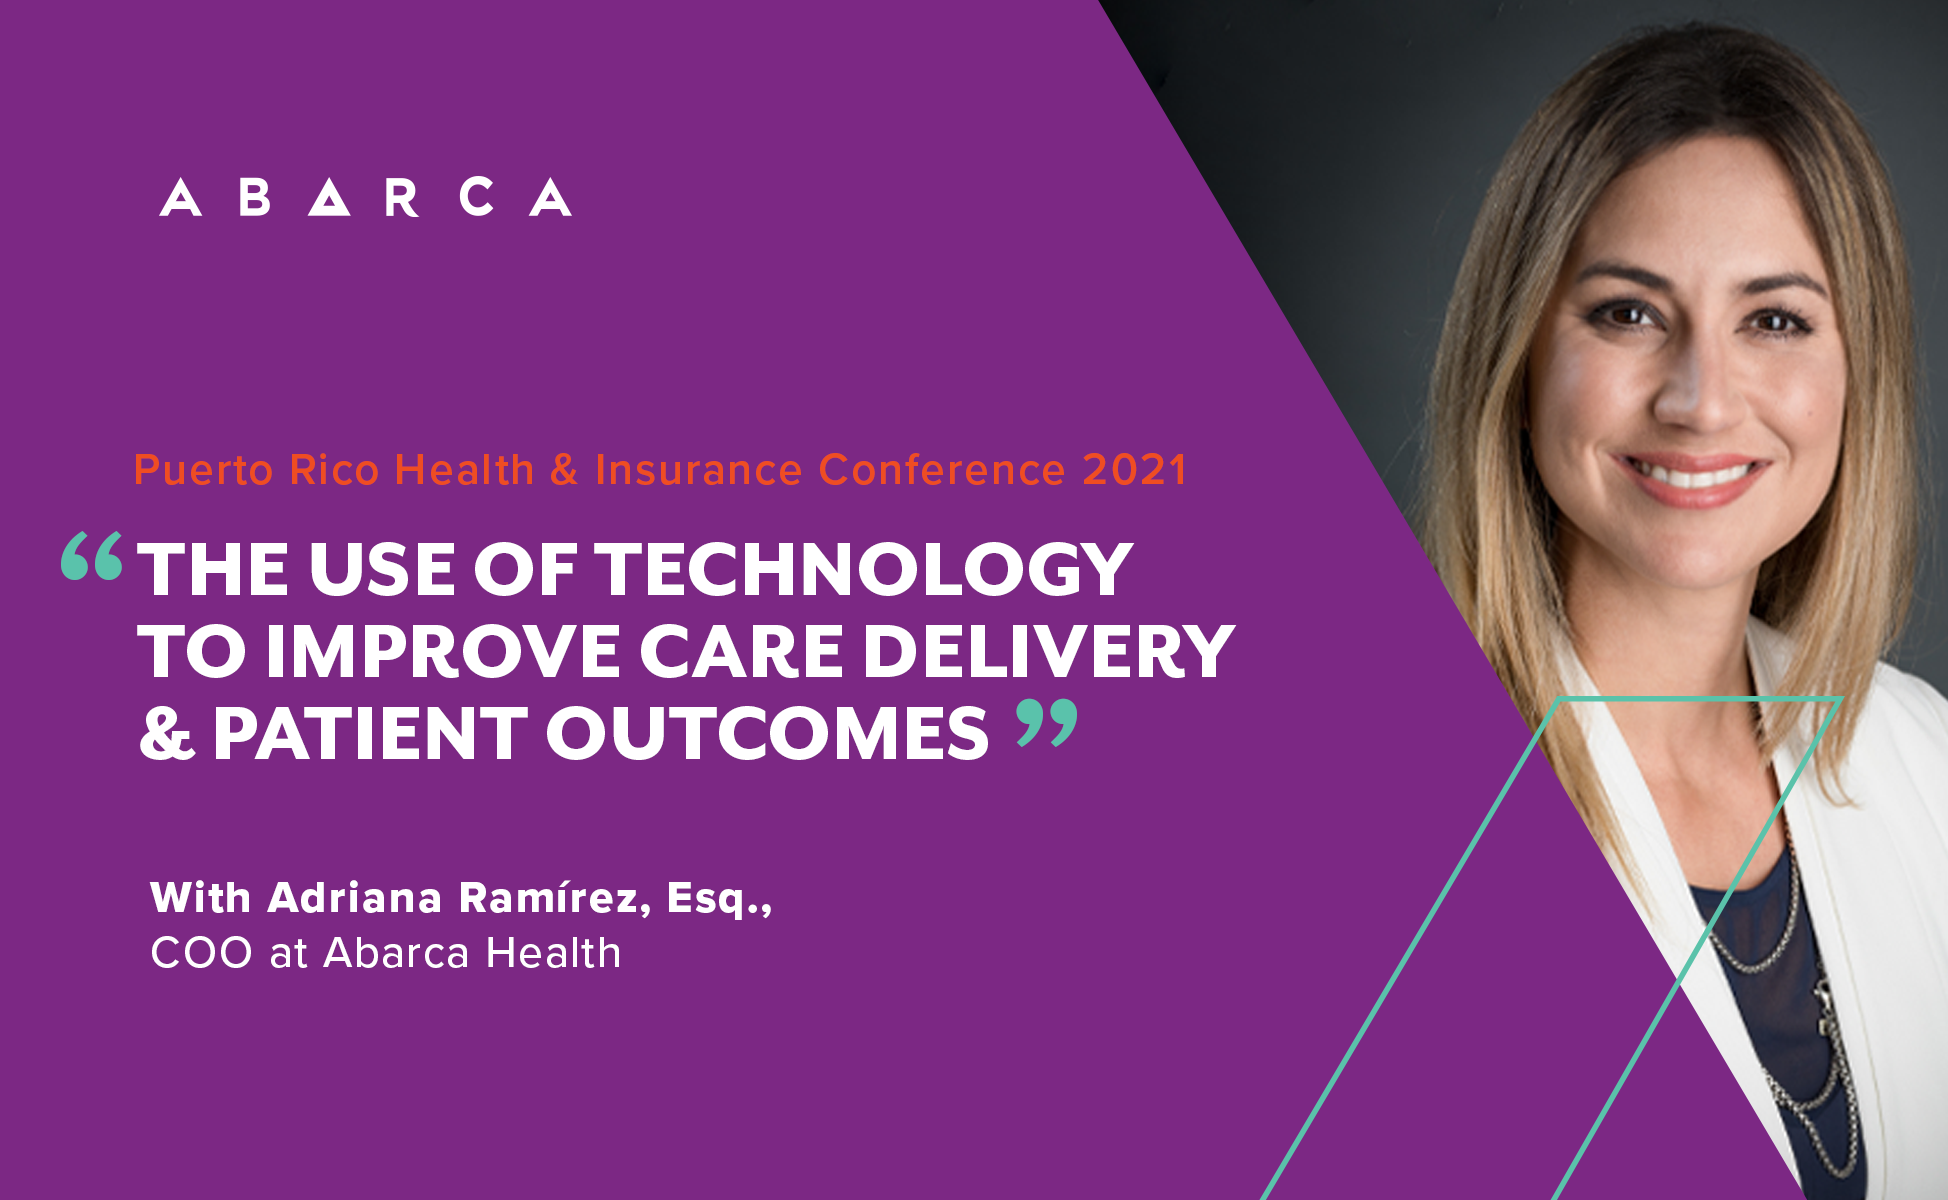 Abarca Health's Adriana Ramirez to lead panel on the role of technology in patient care